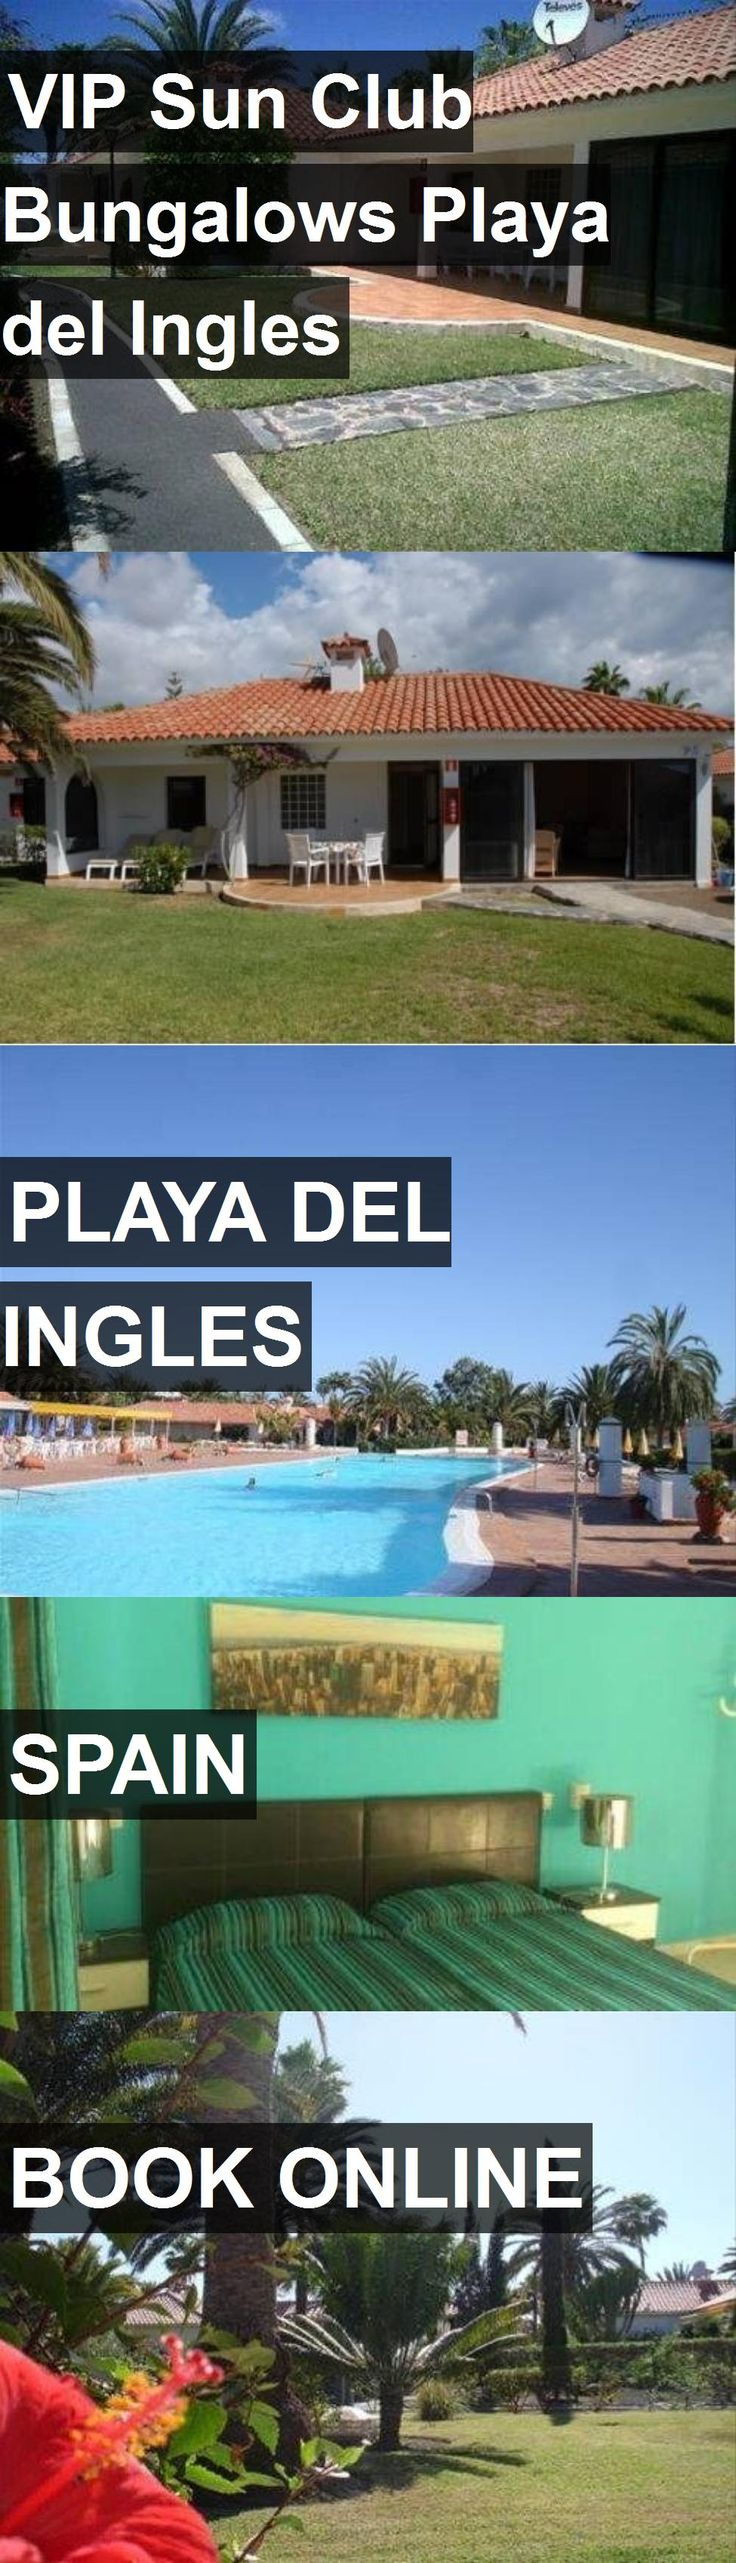 Hotel VIP Sun Club Bungalows Playa del Ingles in Playa del Ingles, Spain. For more information, photos, reviews and best prices please follow the link. #Spain #PlayadelIngles #travel #vacation #hotel